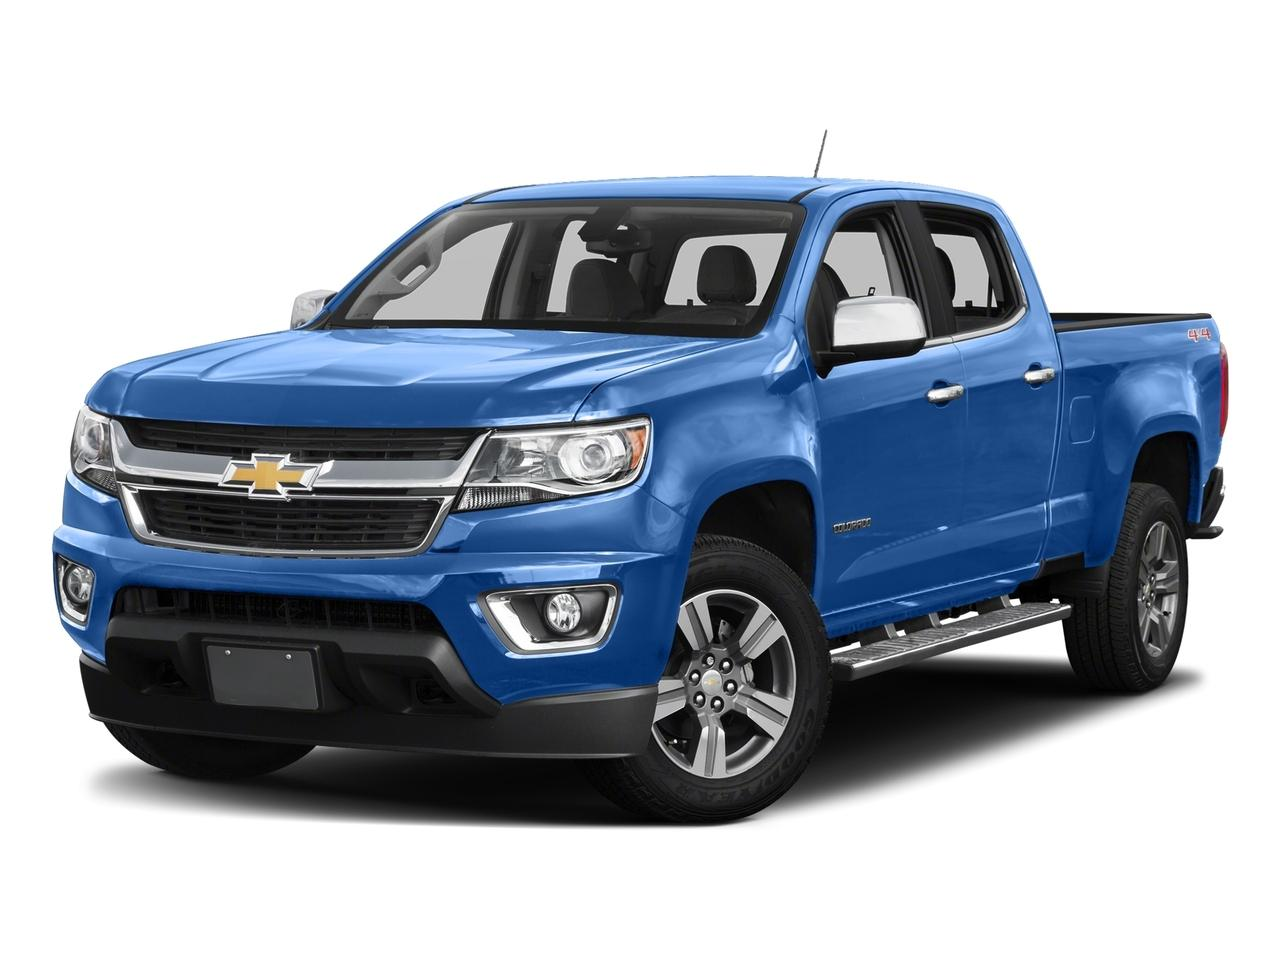 2018 Chevrolet Colorado Vehicle Photo in Killeen, TX 76541